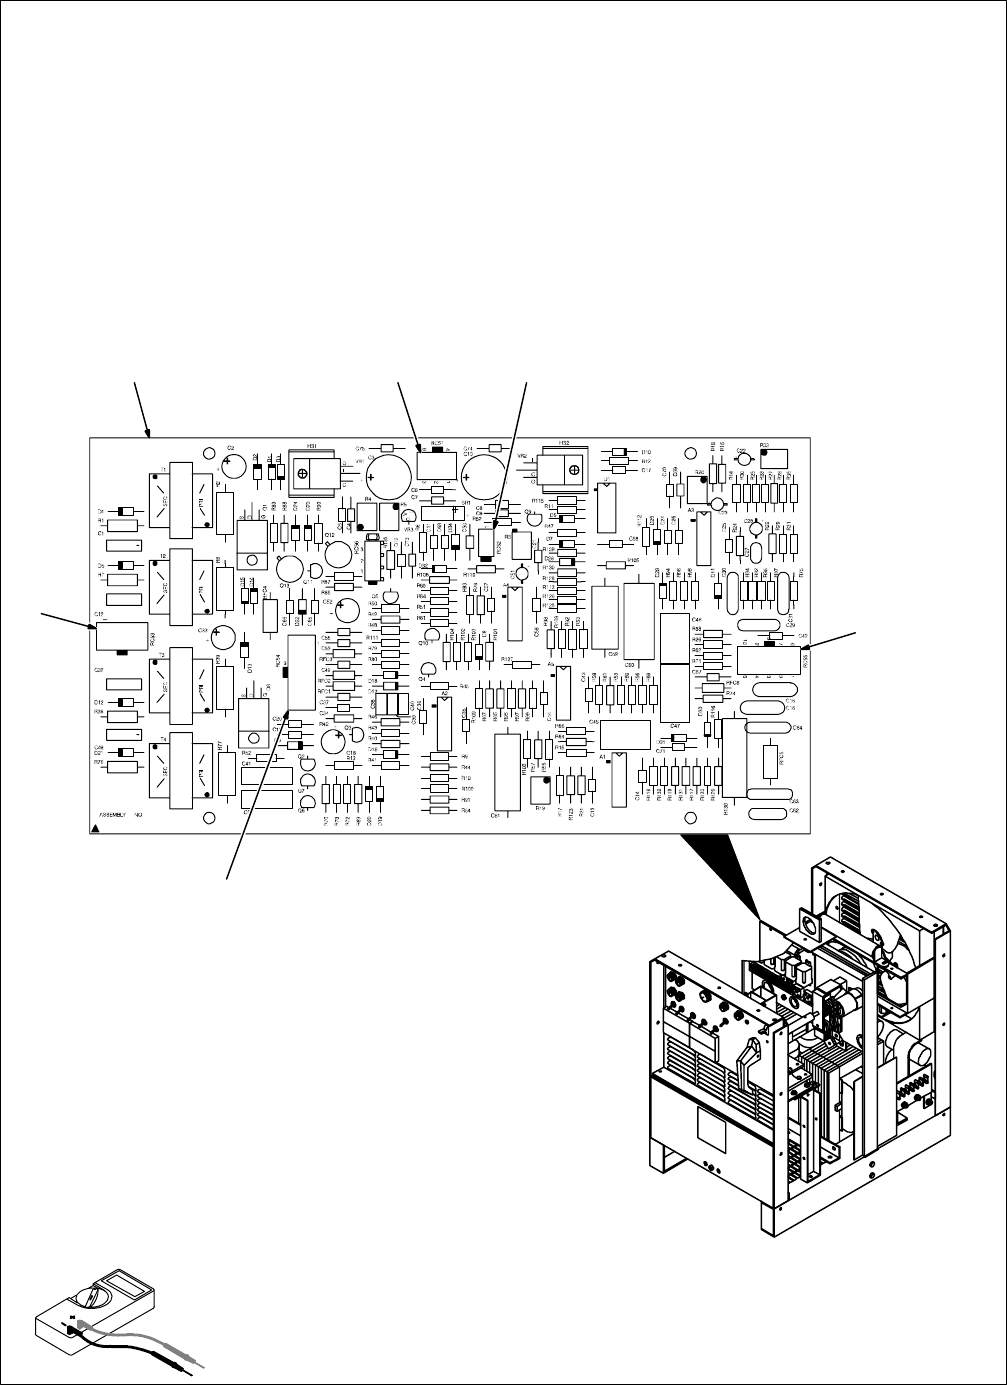 Miller Electric Syncrowave 250 Technical Manual Manualslib Makes It Easy To Find Manuals Online